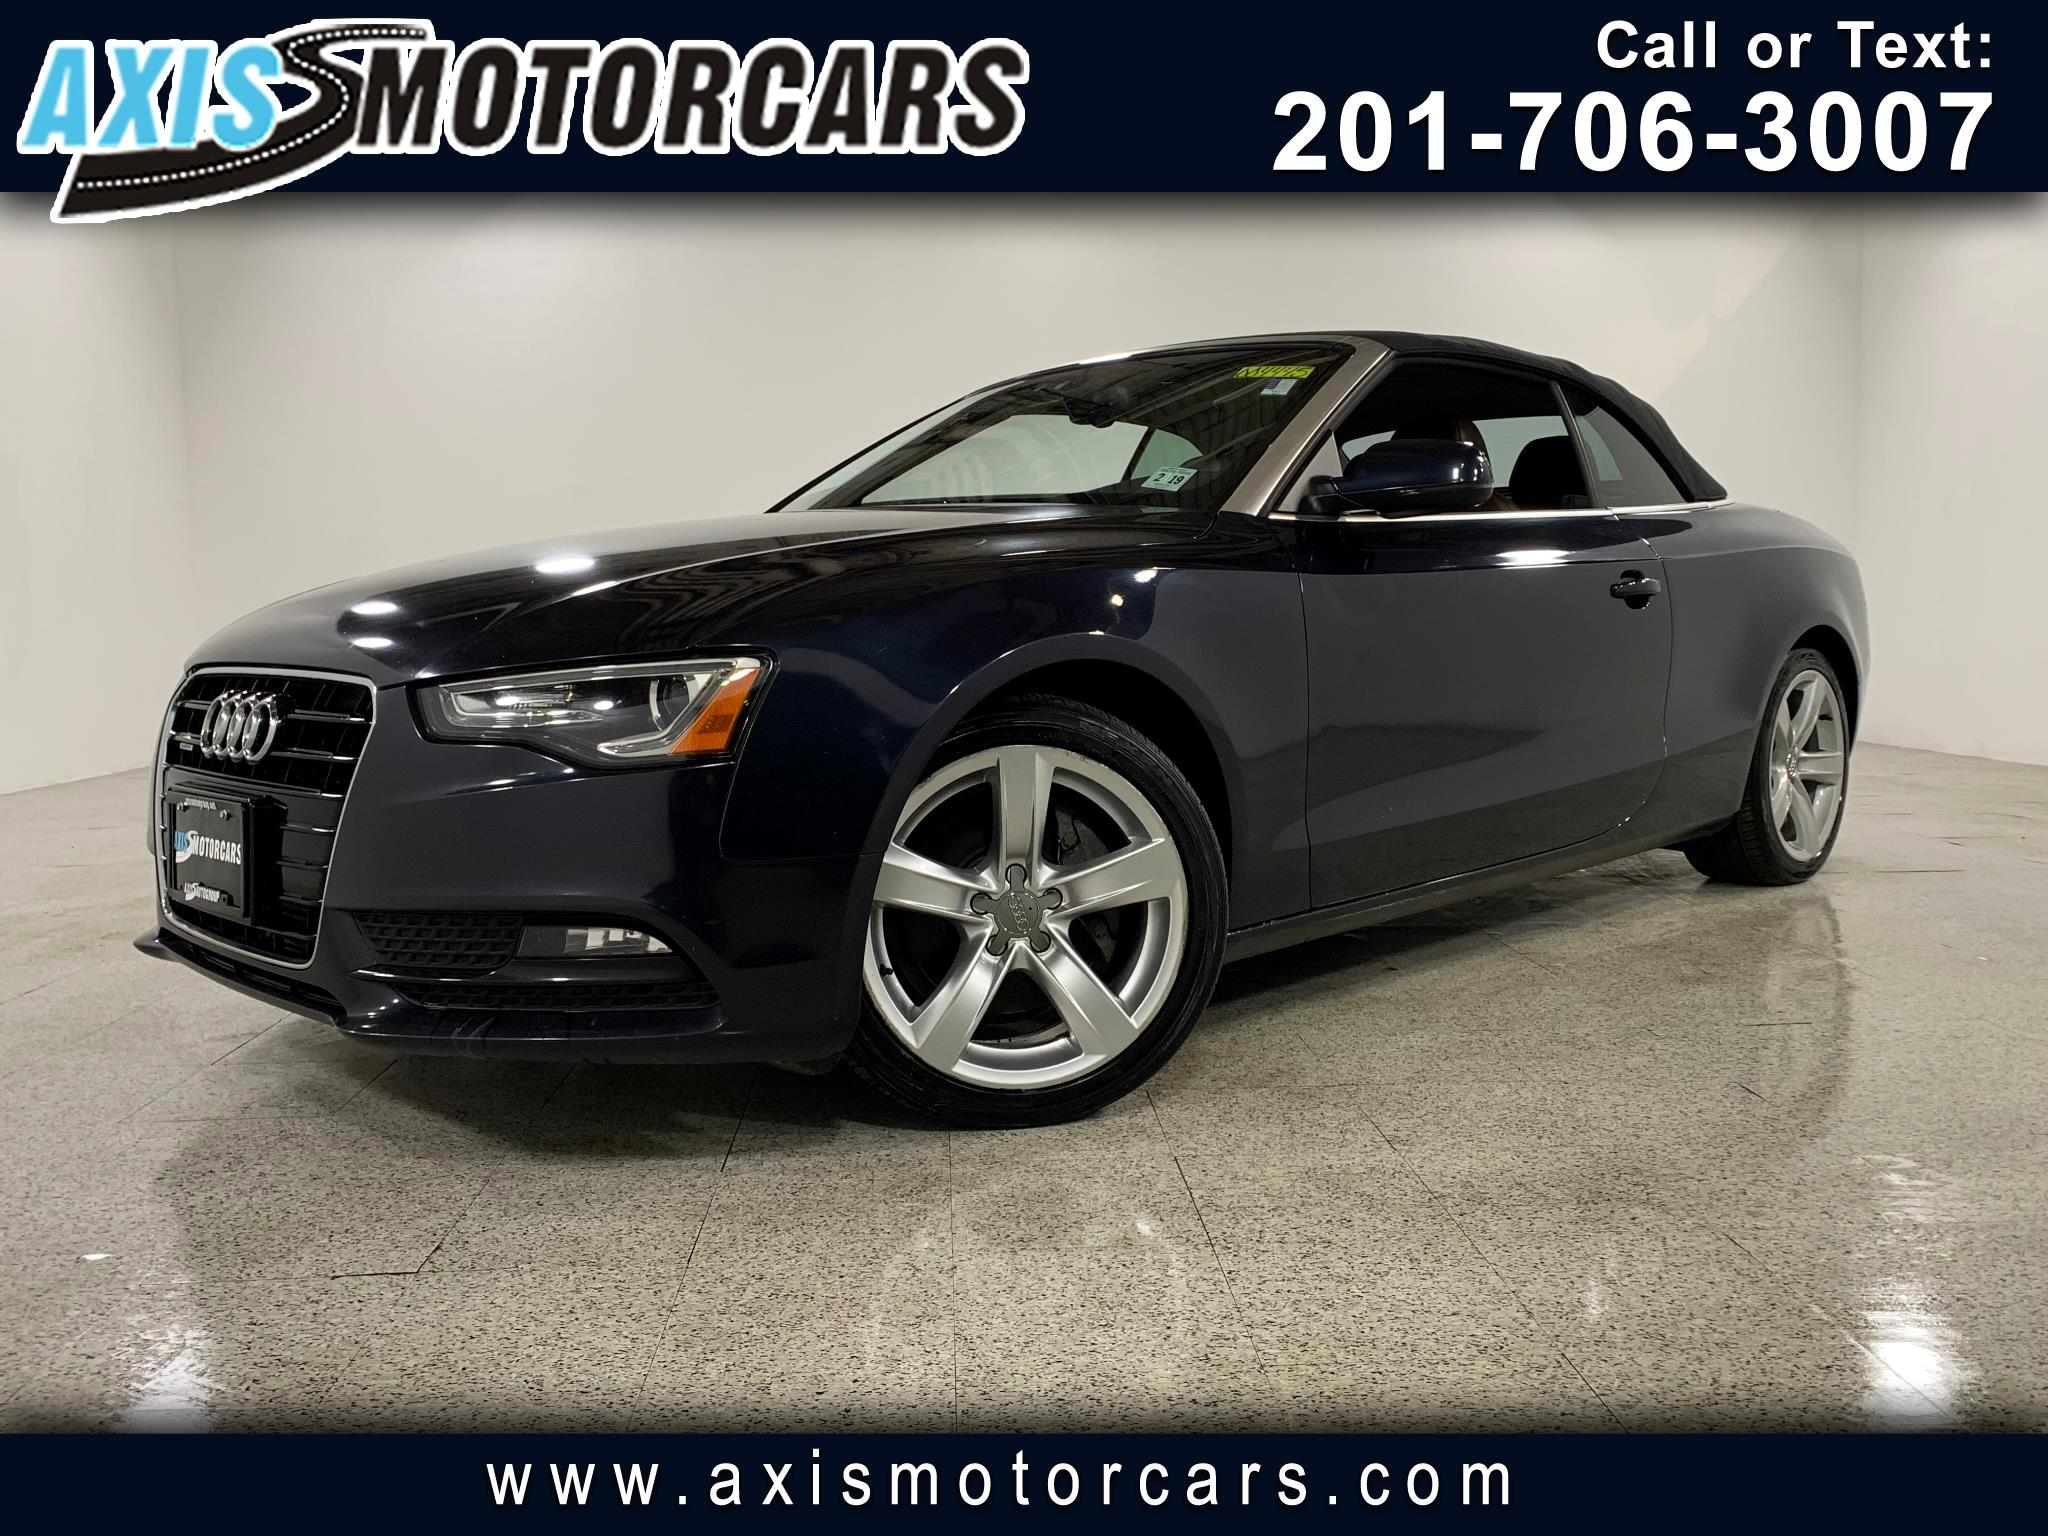 2014 Audi A5 2.0T Premium Plus w/Navigation Bakup Camera